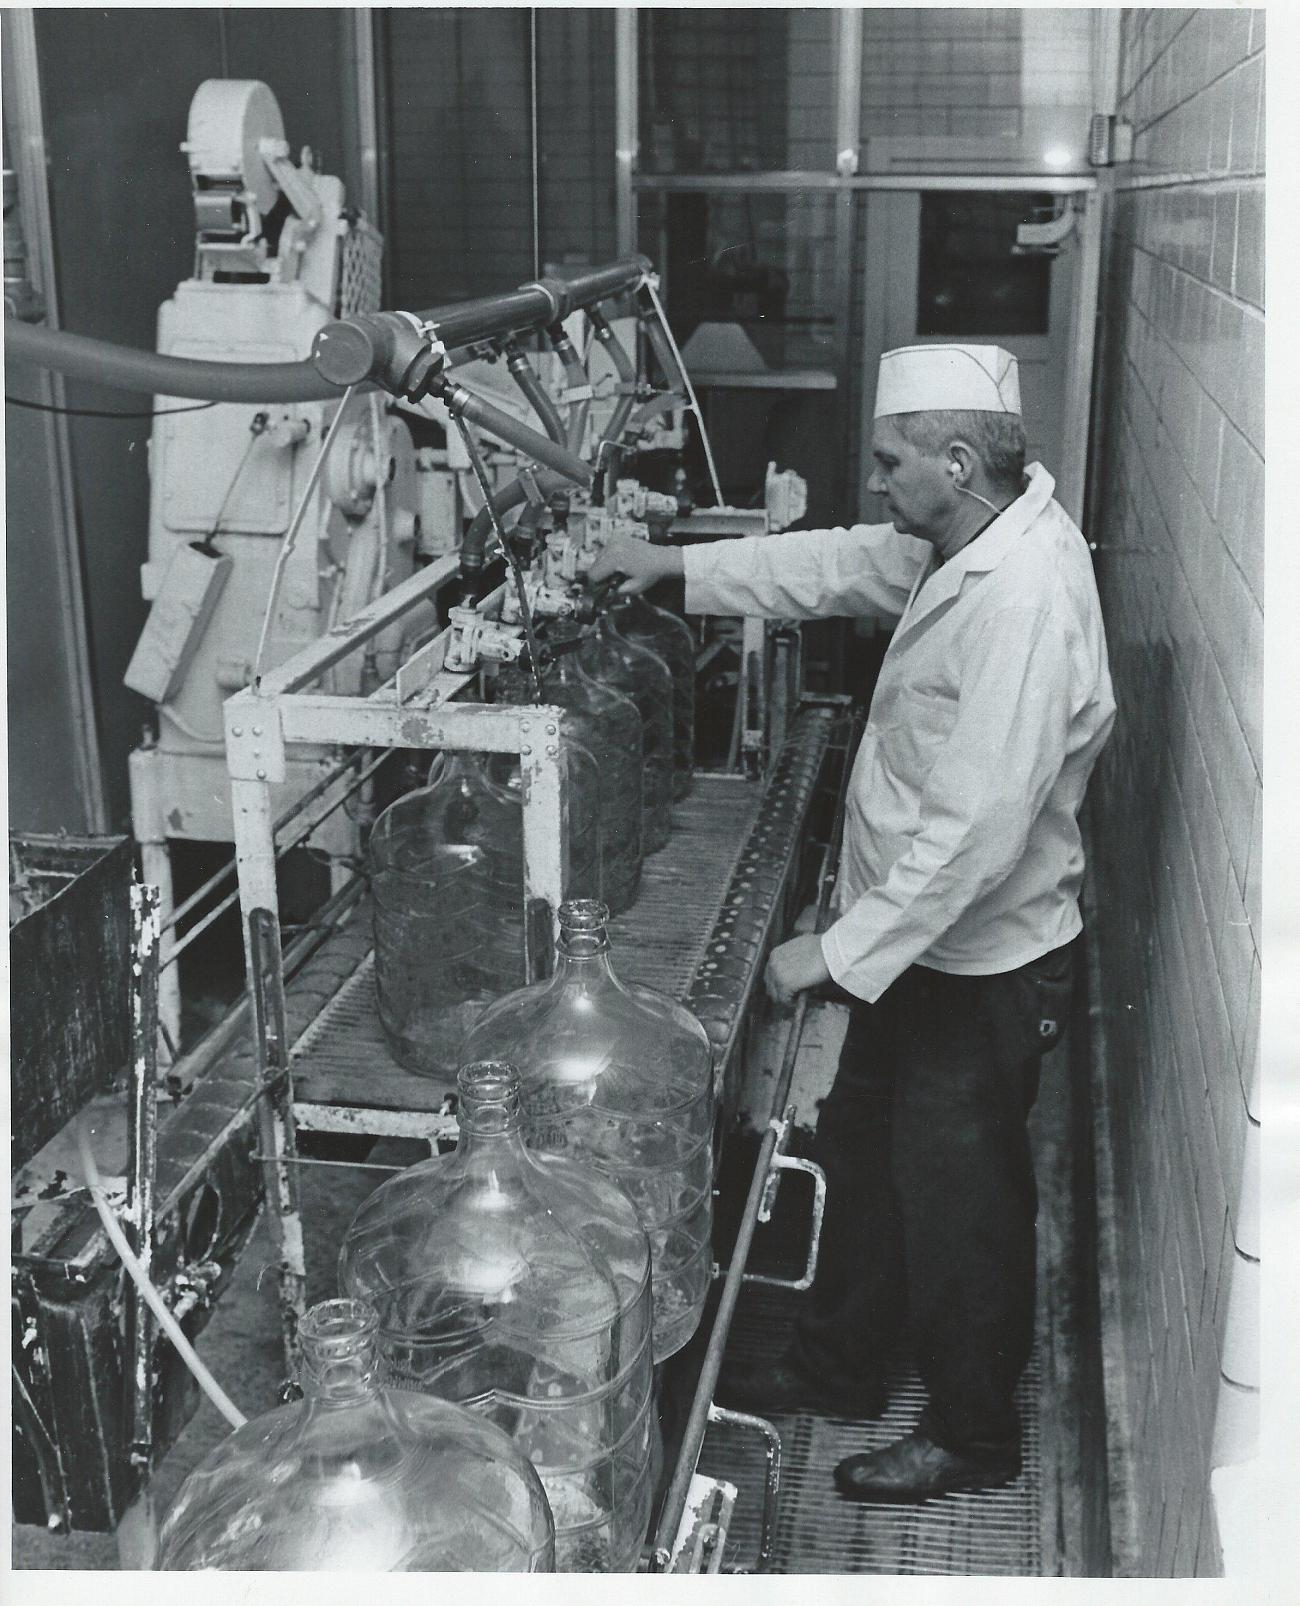 A former Glenwood-Inglewood employee is working hard on the line in the 1960's.